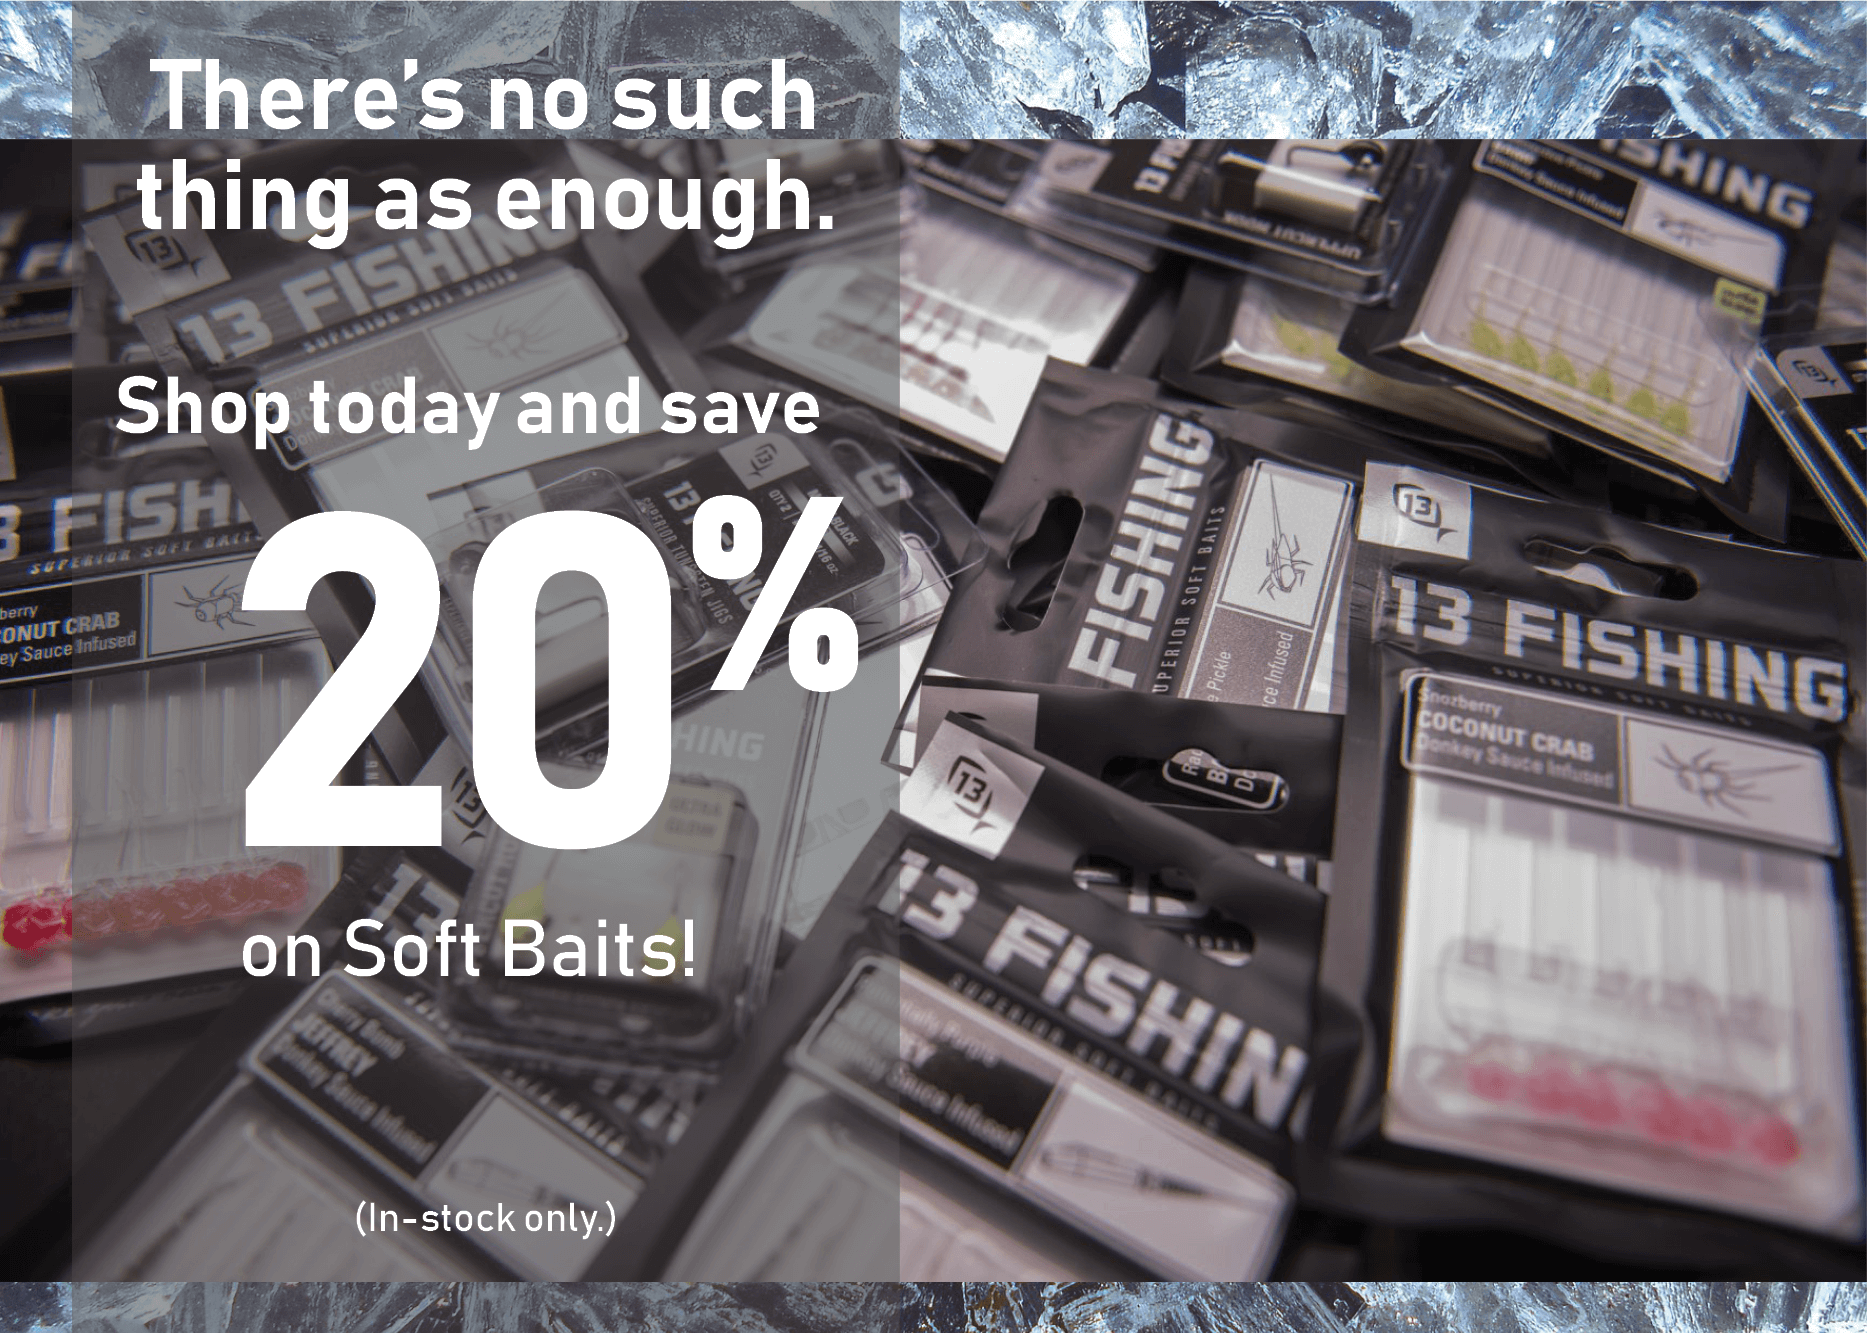 Shop today and save 20% on Soft Baits!